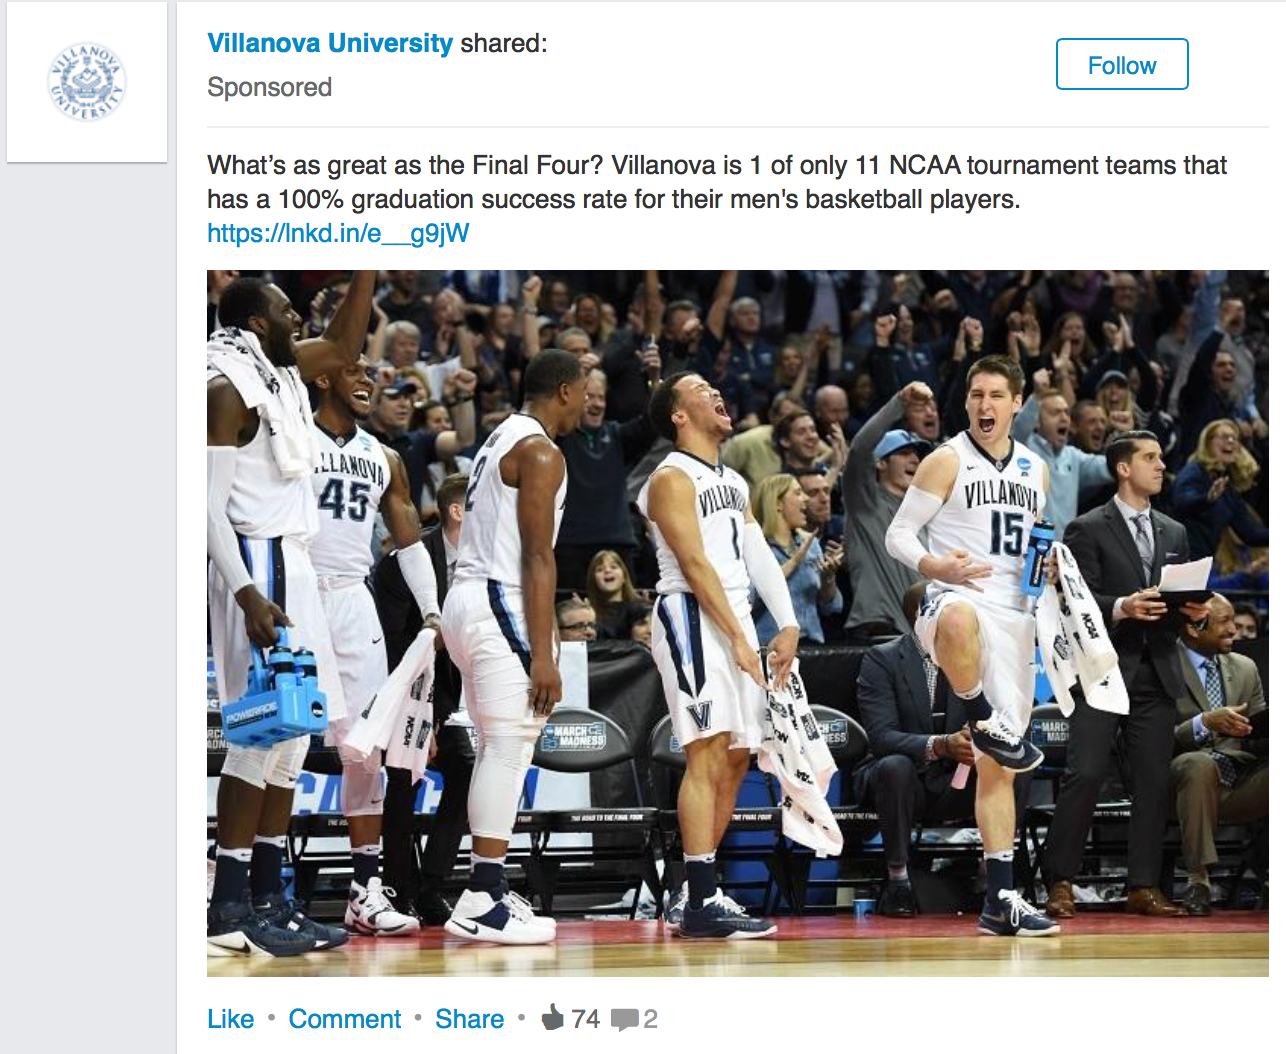 When Villanova's men's basketball squad made it to the Final Four, the university seized upon the chance to show off its academic prowess on LinkedIn. But the execution fell flat, as Villanova failed to capitalize on an easy newsjacking opportunity.